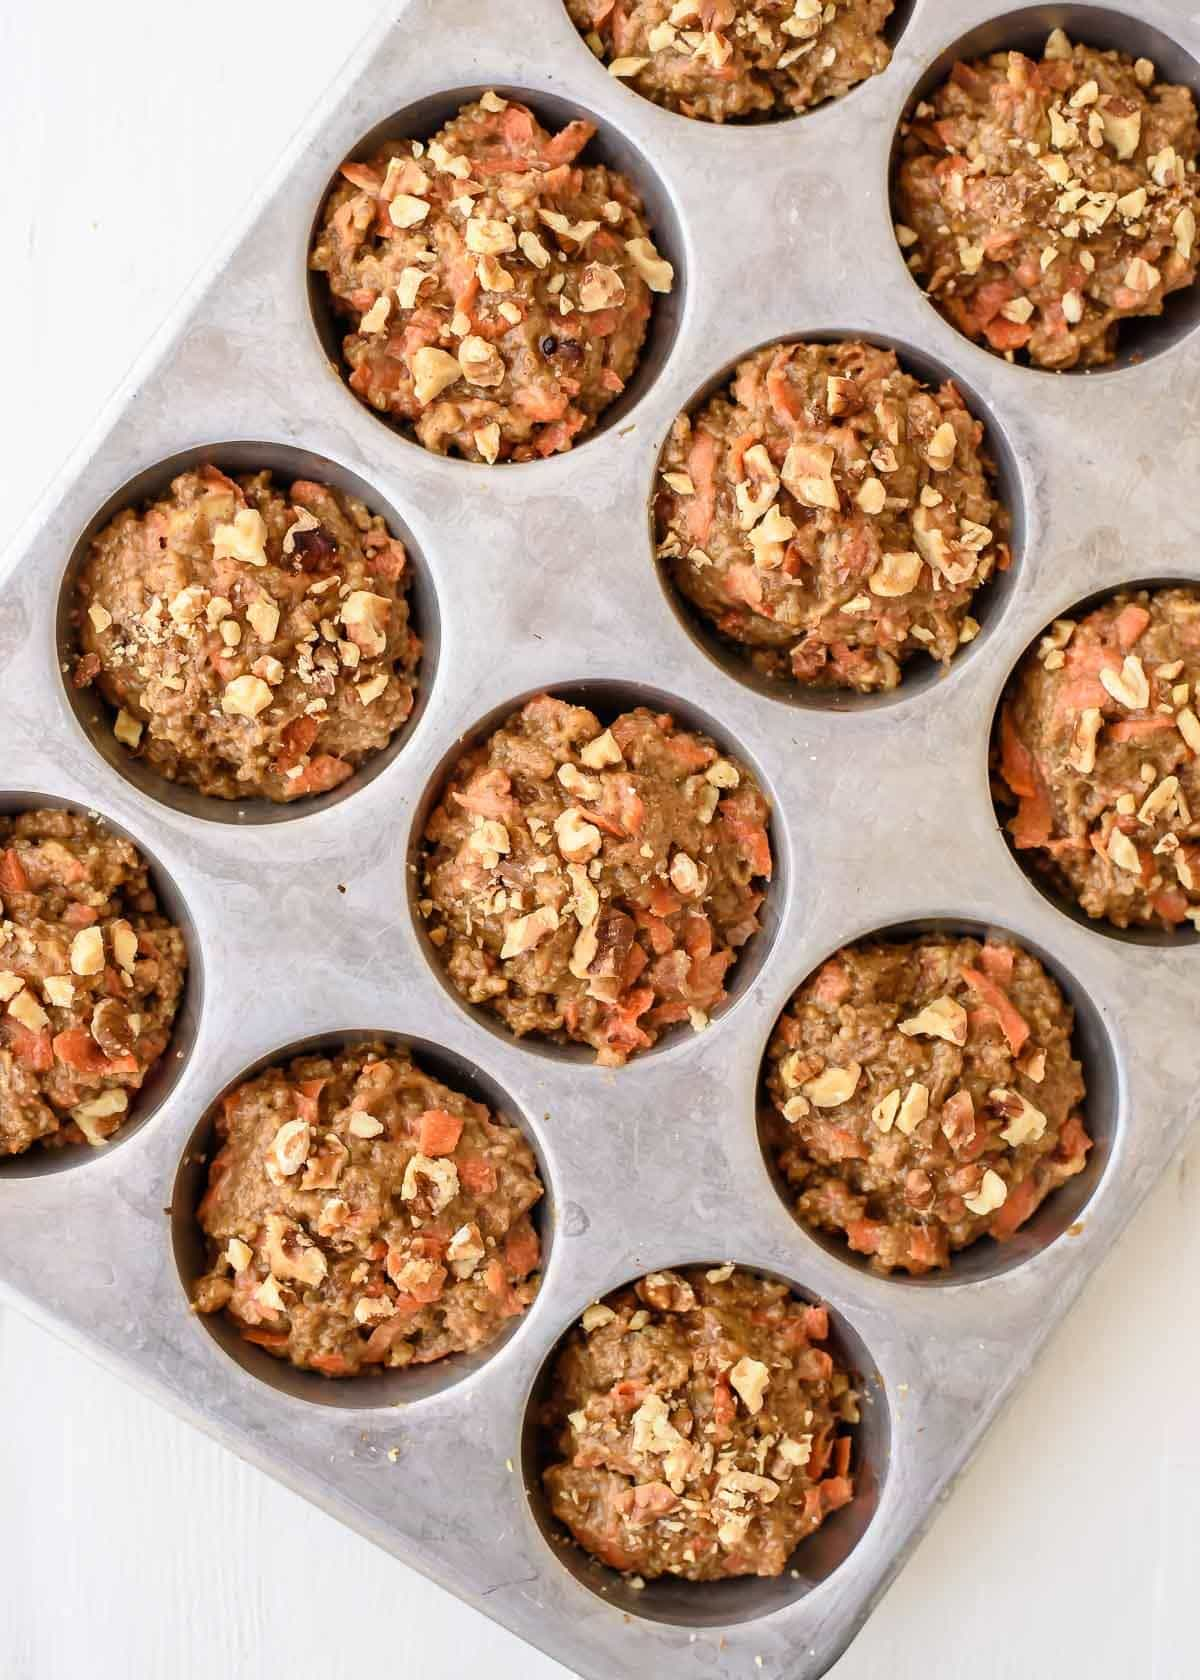 Healthy Carrot Quinoa Muffins. These taste exactly like carrot cake and are good for you too! @wellplated